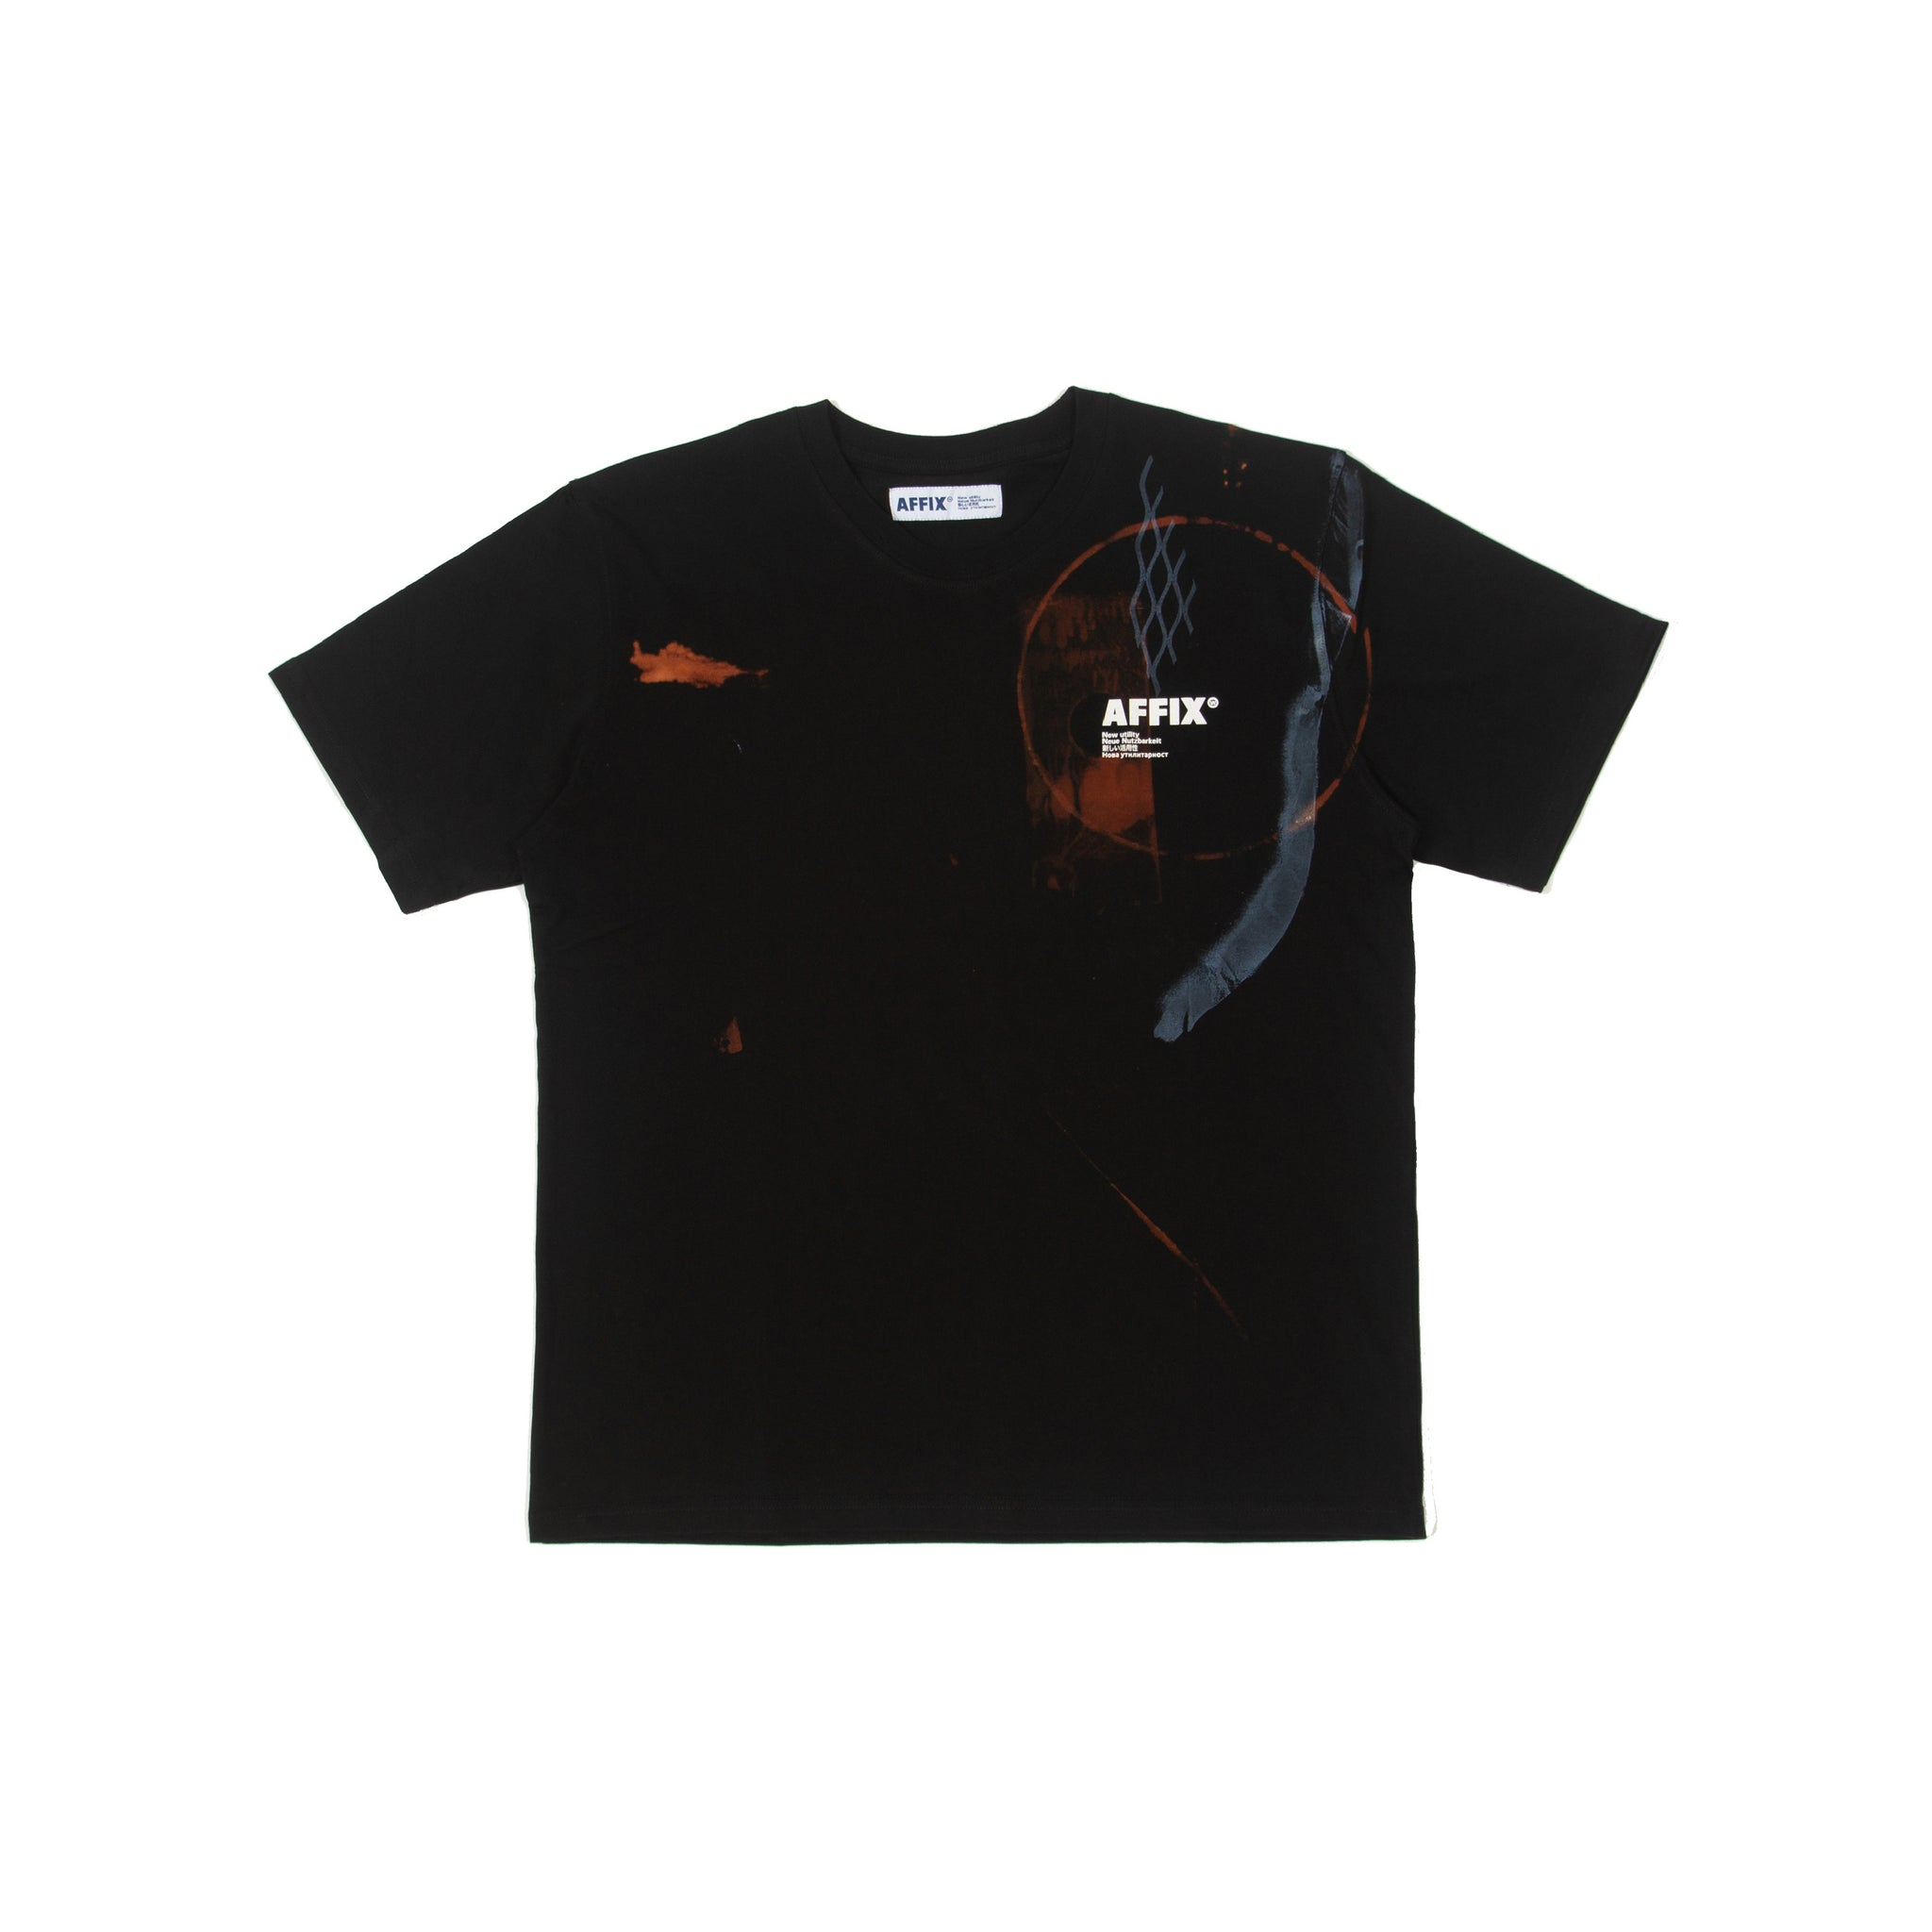 AFFIX re WORKS T-SHIRT SS 03 L